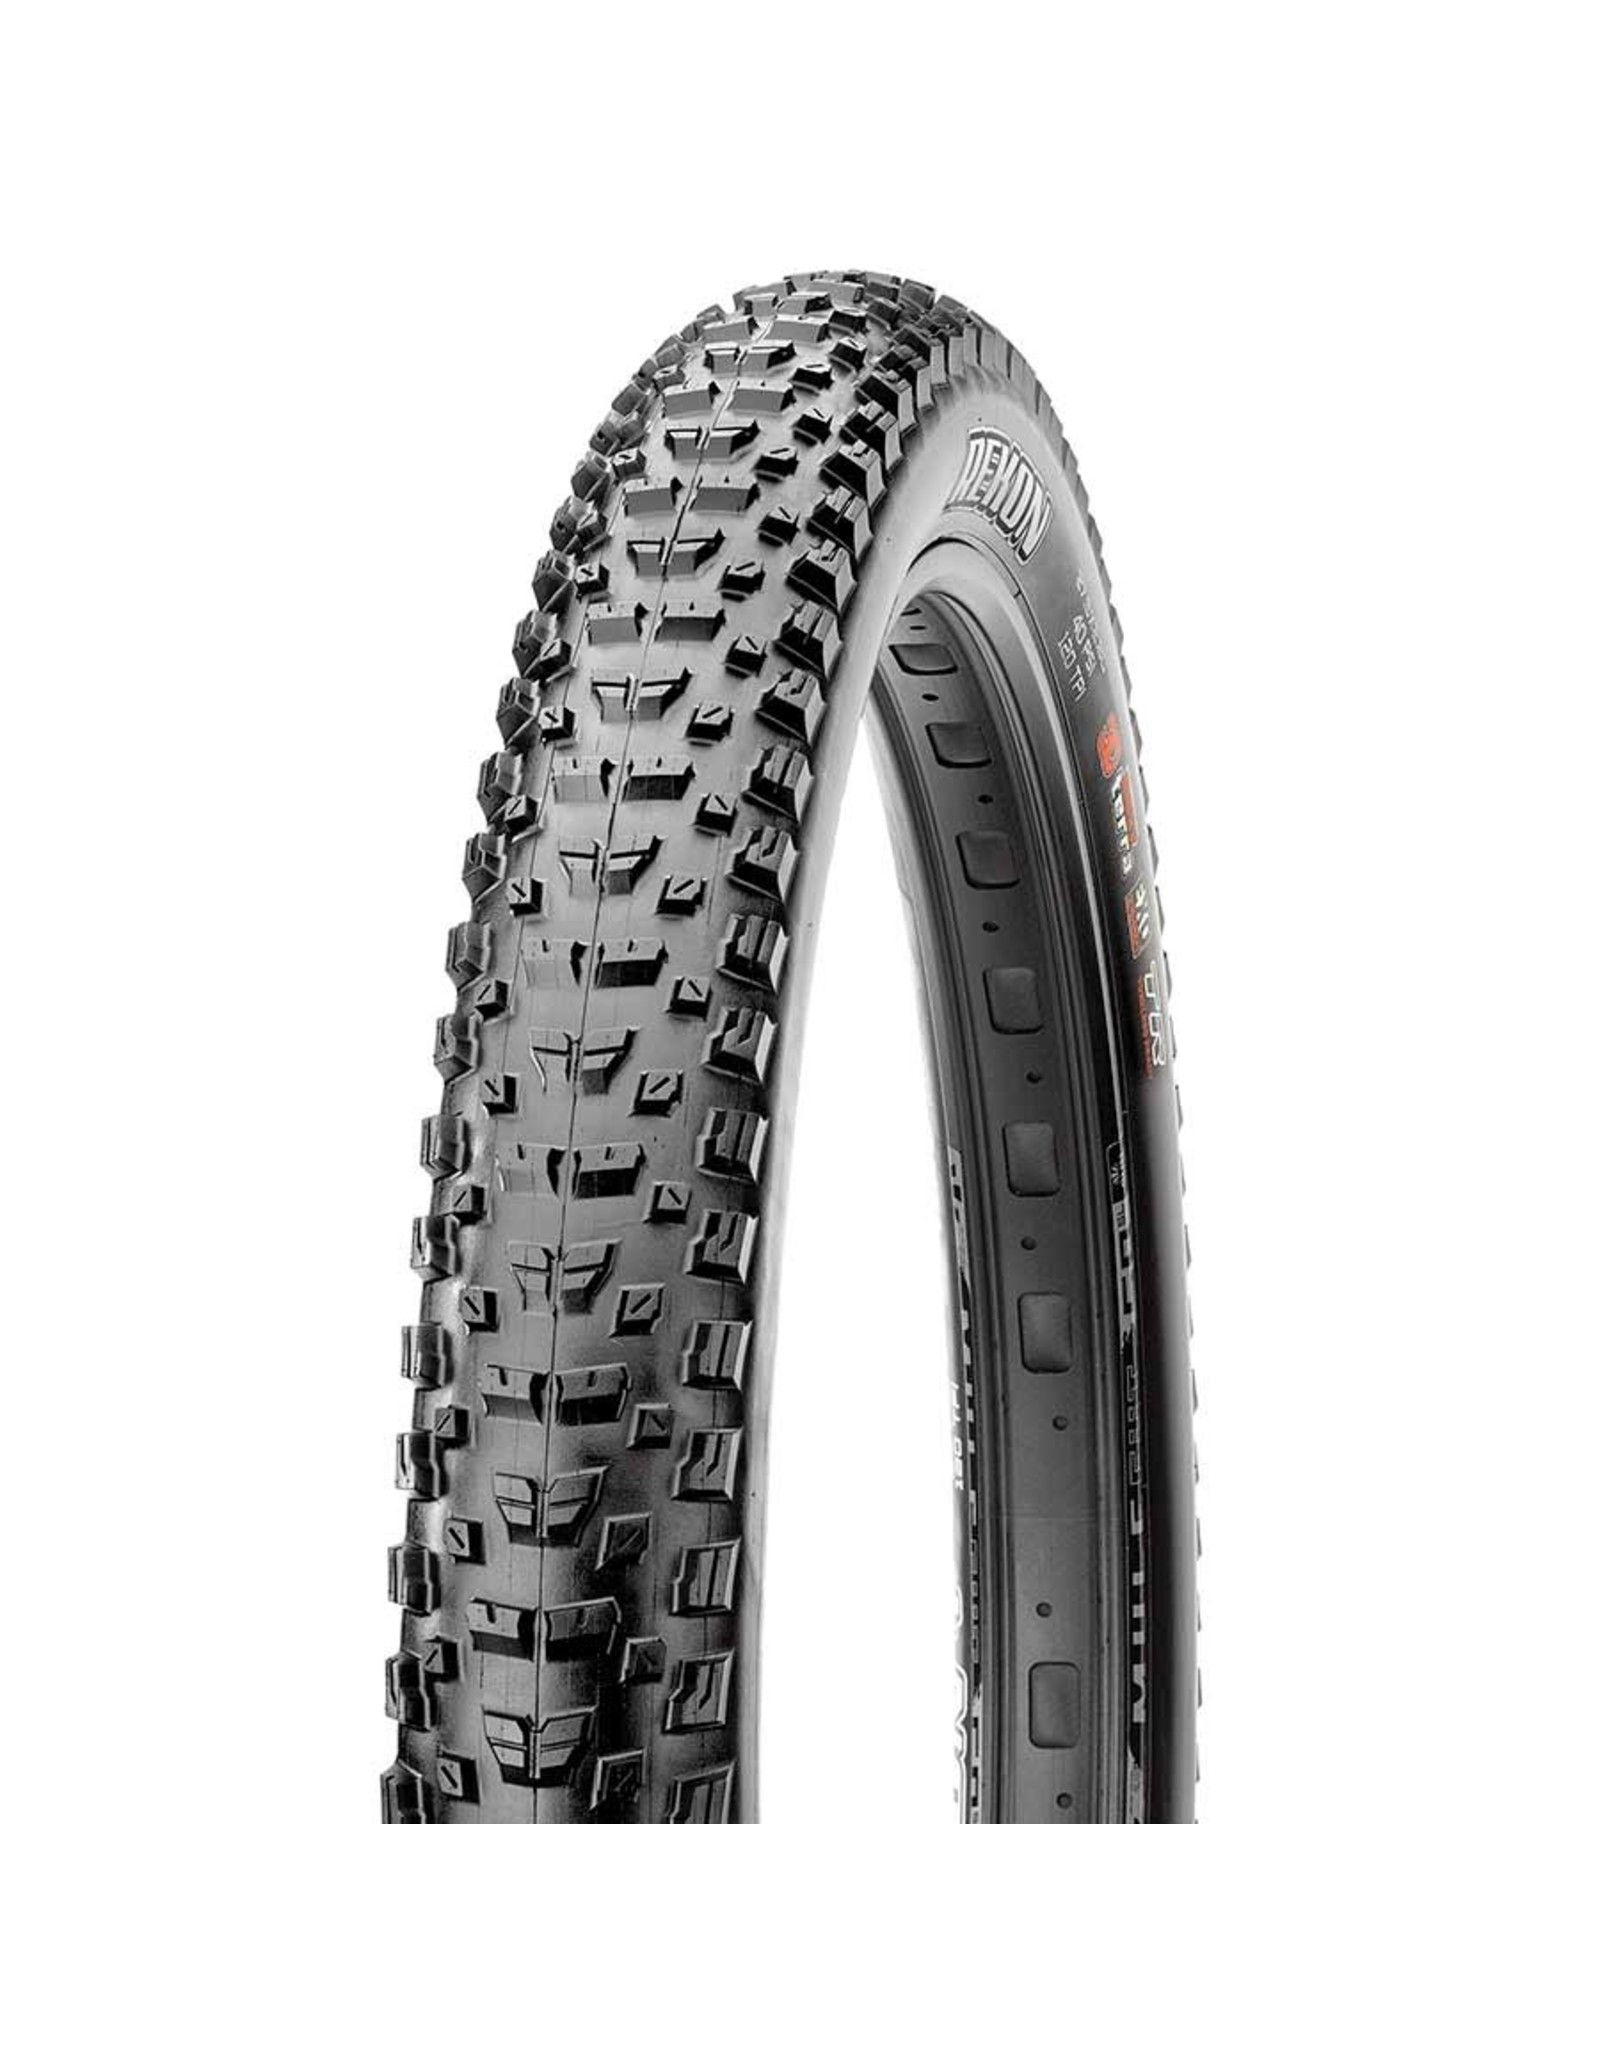 Maxxis, Rekon, Tire, 27.5''x2.40, Folding, Tubeless Ready, 3C Maxx Terra, EXO, 60TPI, Black